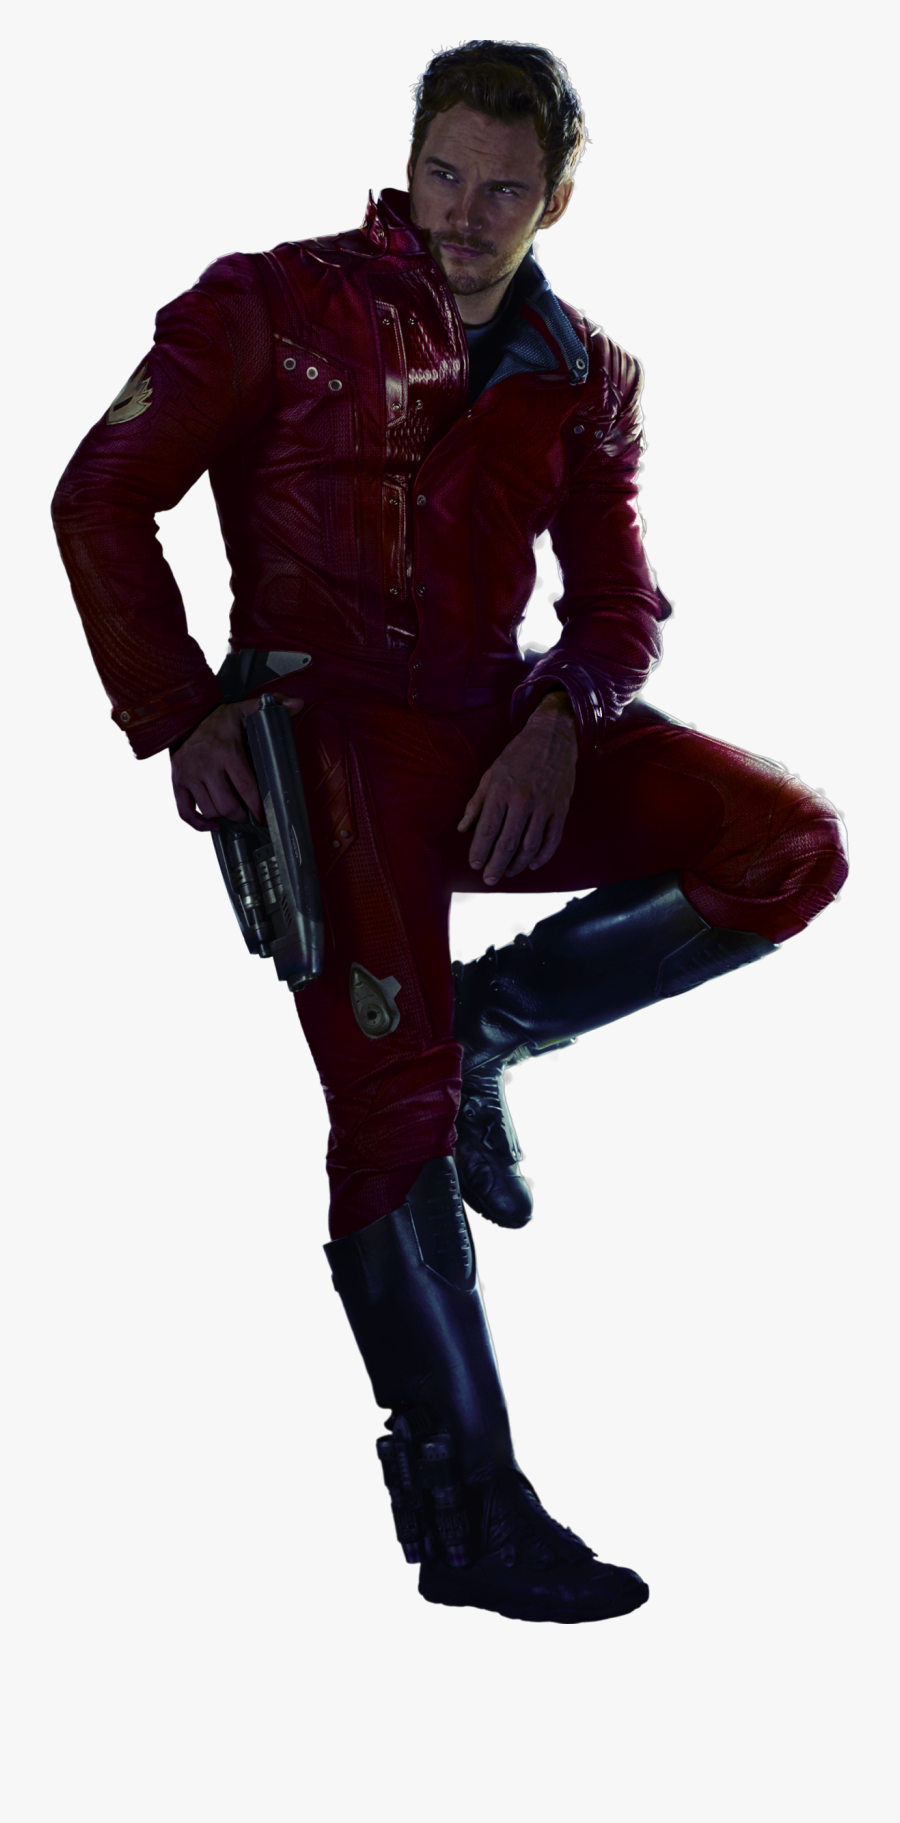 Guardians Of The Galaxy Png Transparent Image - Guardians Of The Galaxy Starlord Png, Transparent Clipart